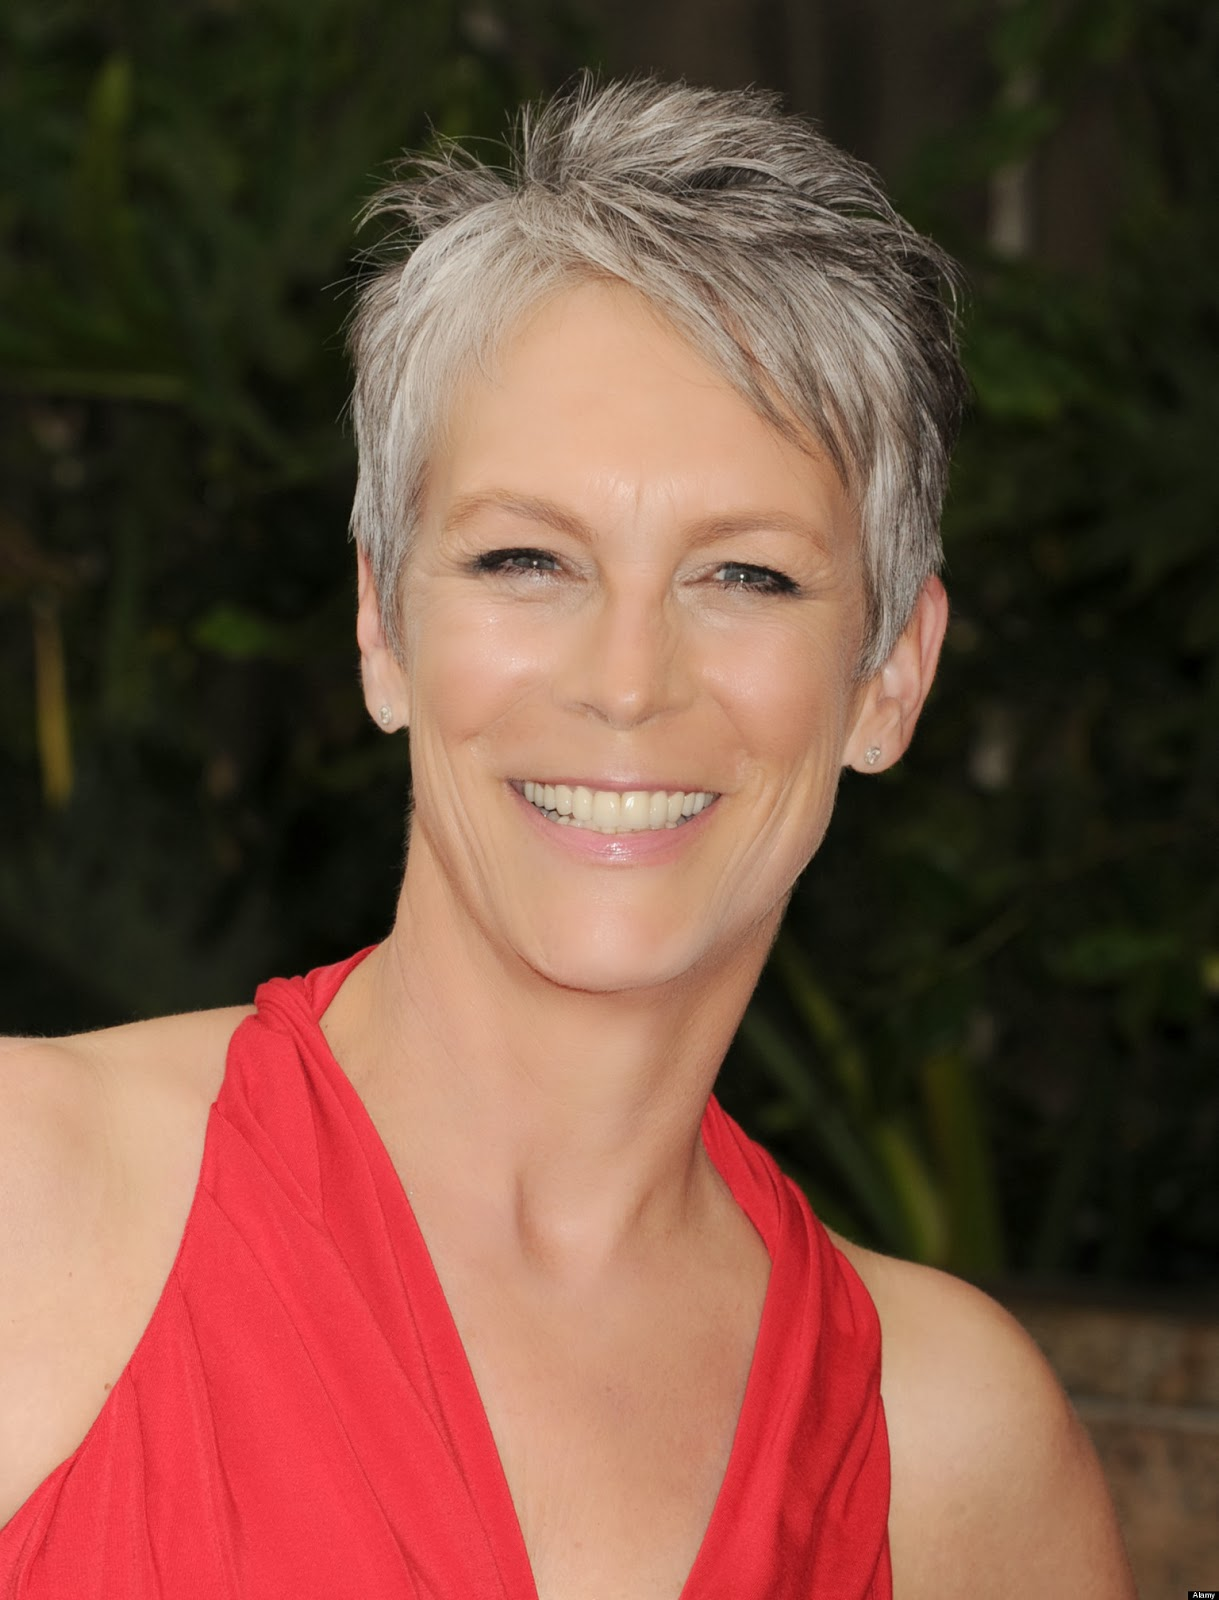 jamie lee curtis - photo #25